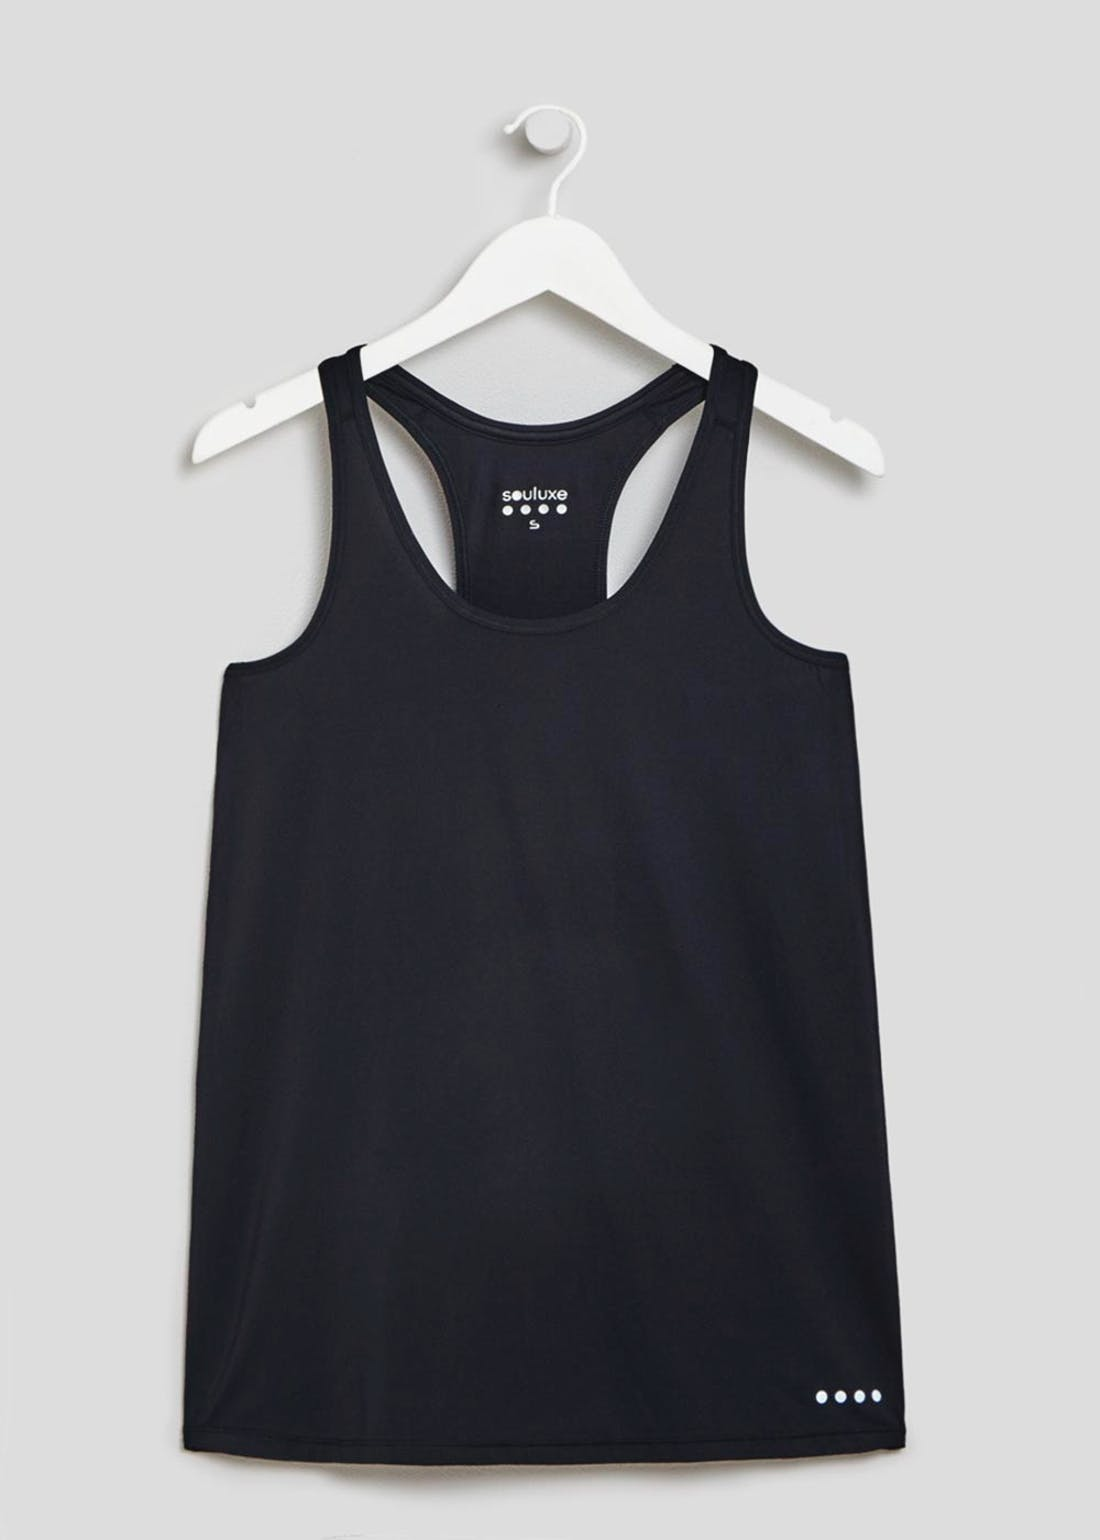 Souluxe Black Racer Back Swing Gym Vest